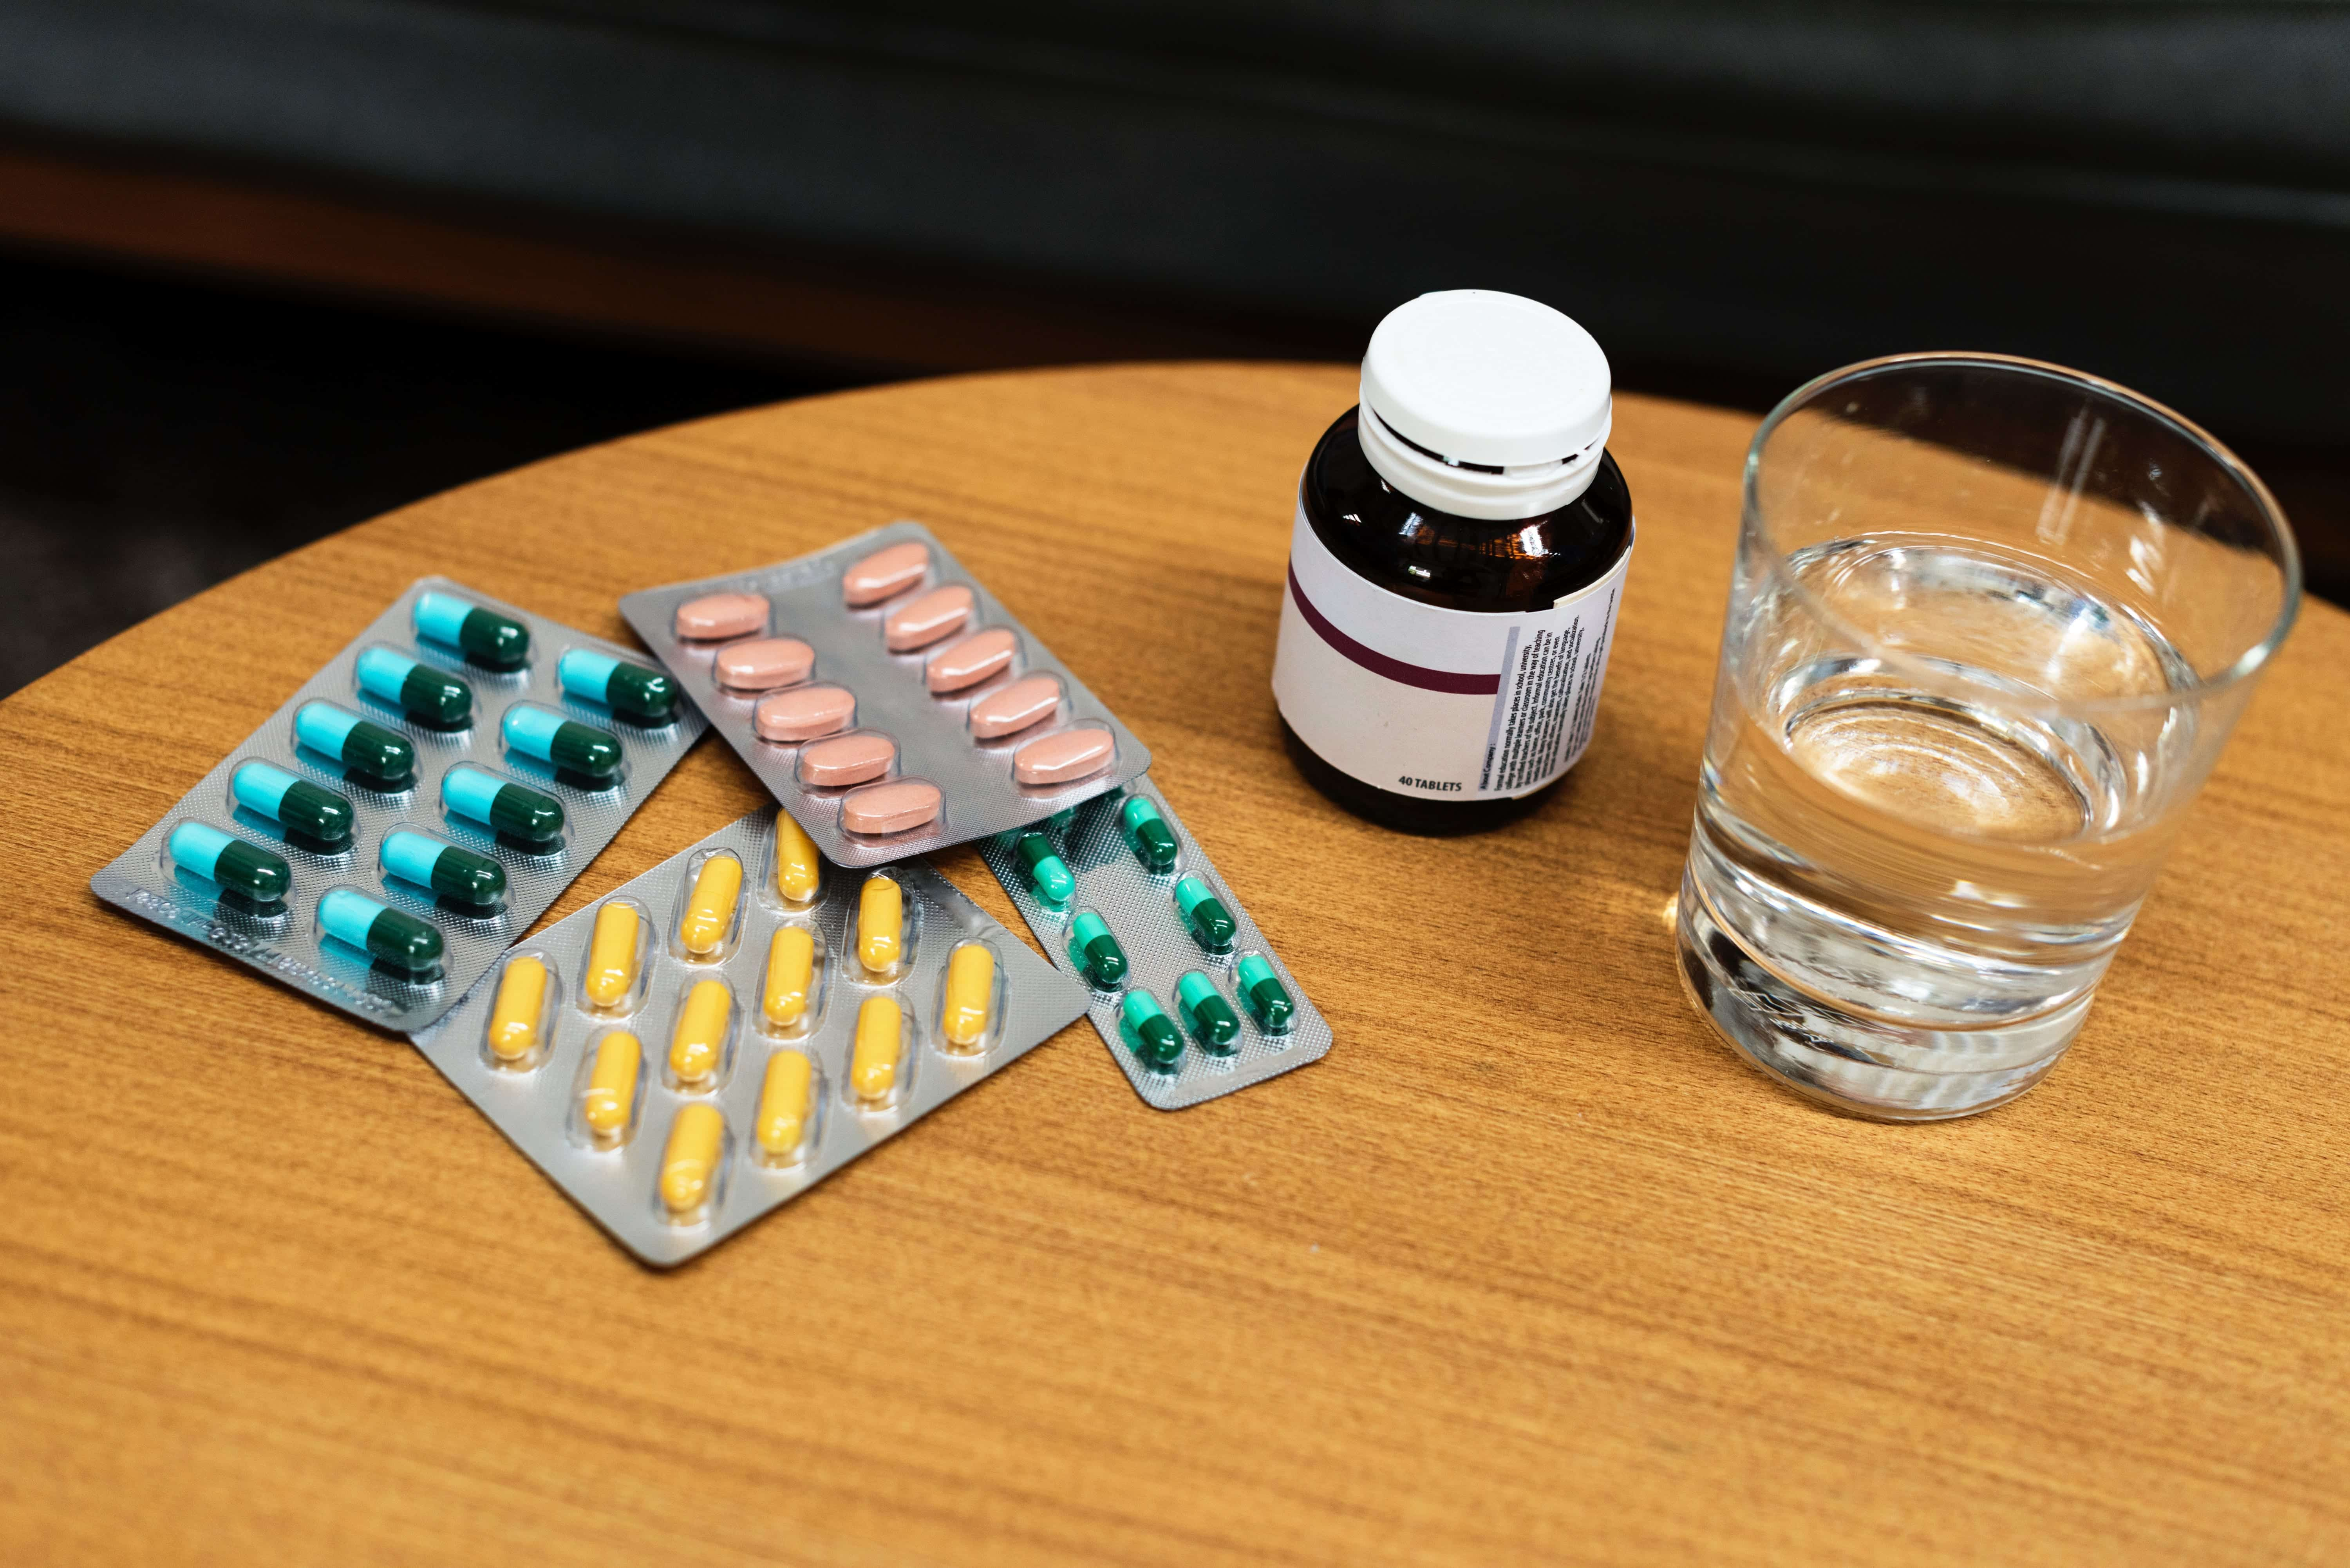 Trump's Proposal Will Make Generic Drugs More Expensive